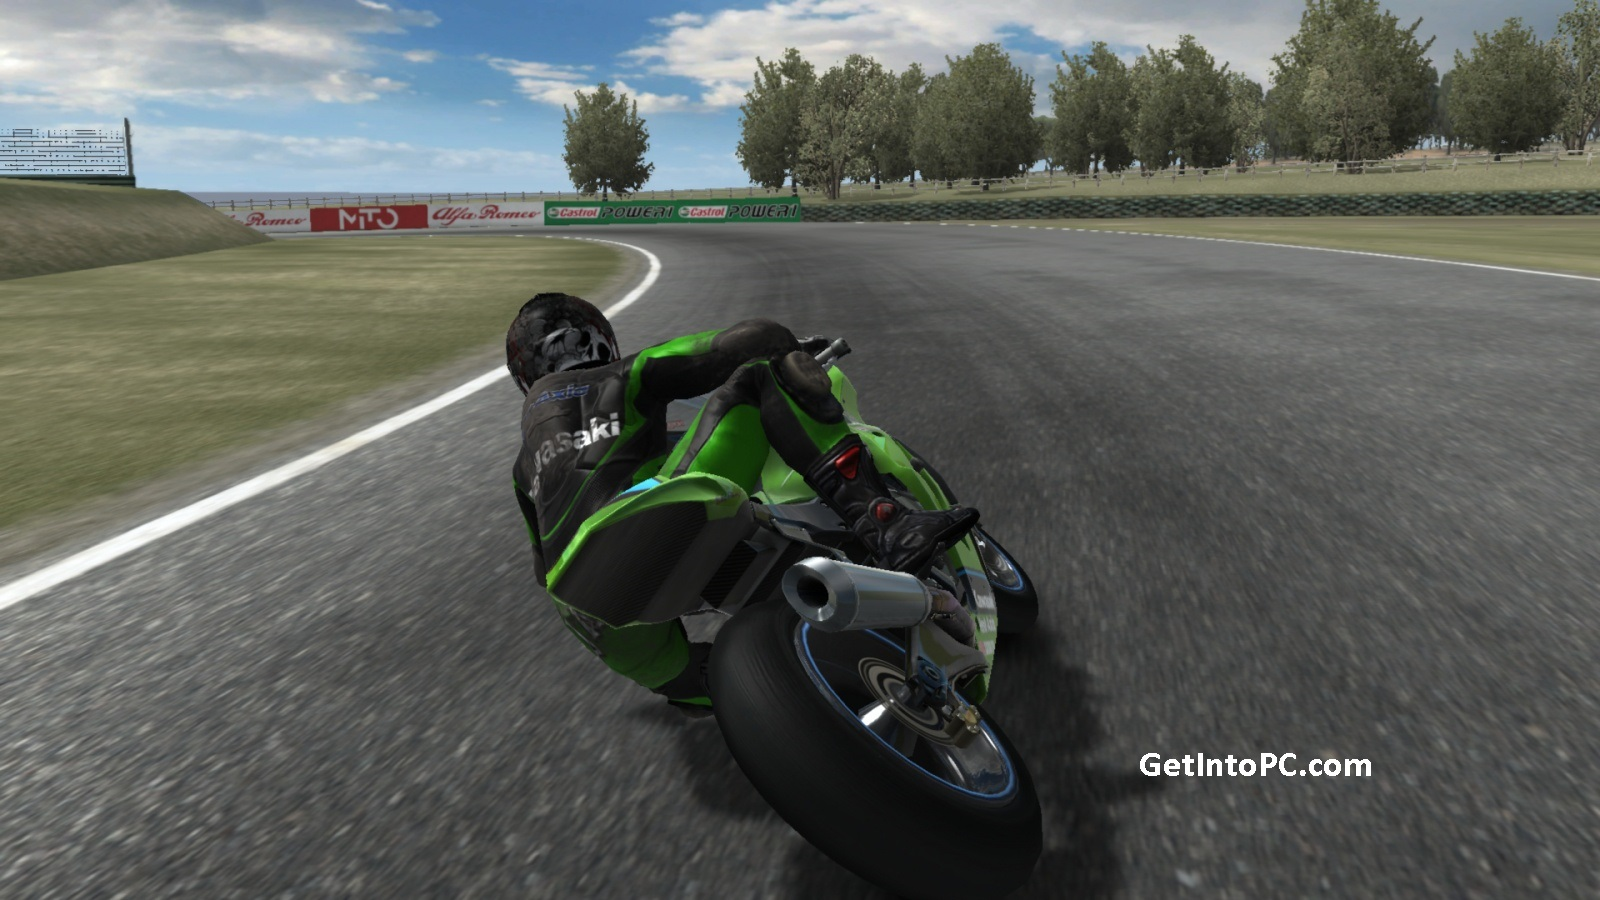 Bike Racing Games Download This Bike racing game has